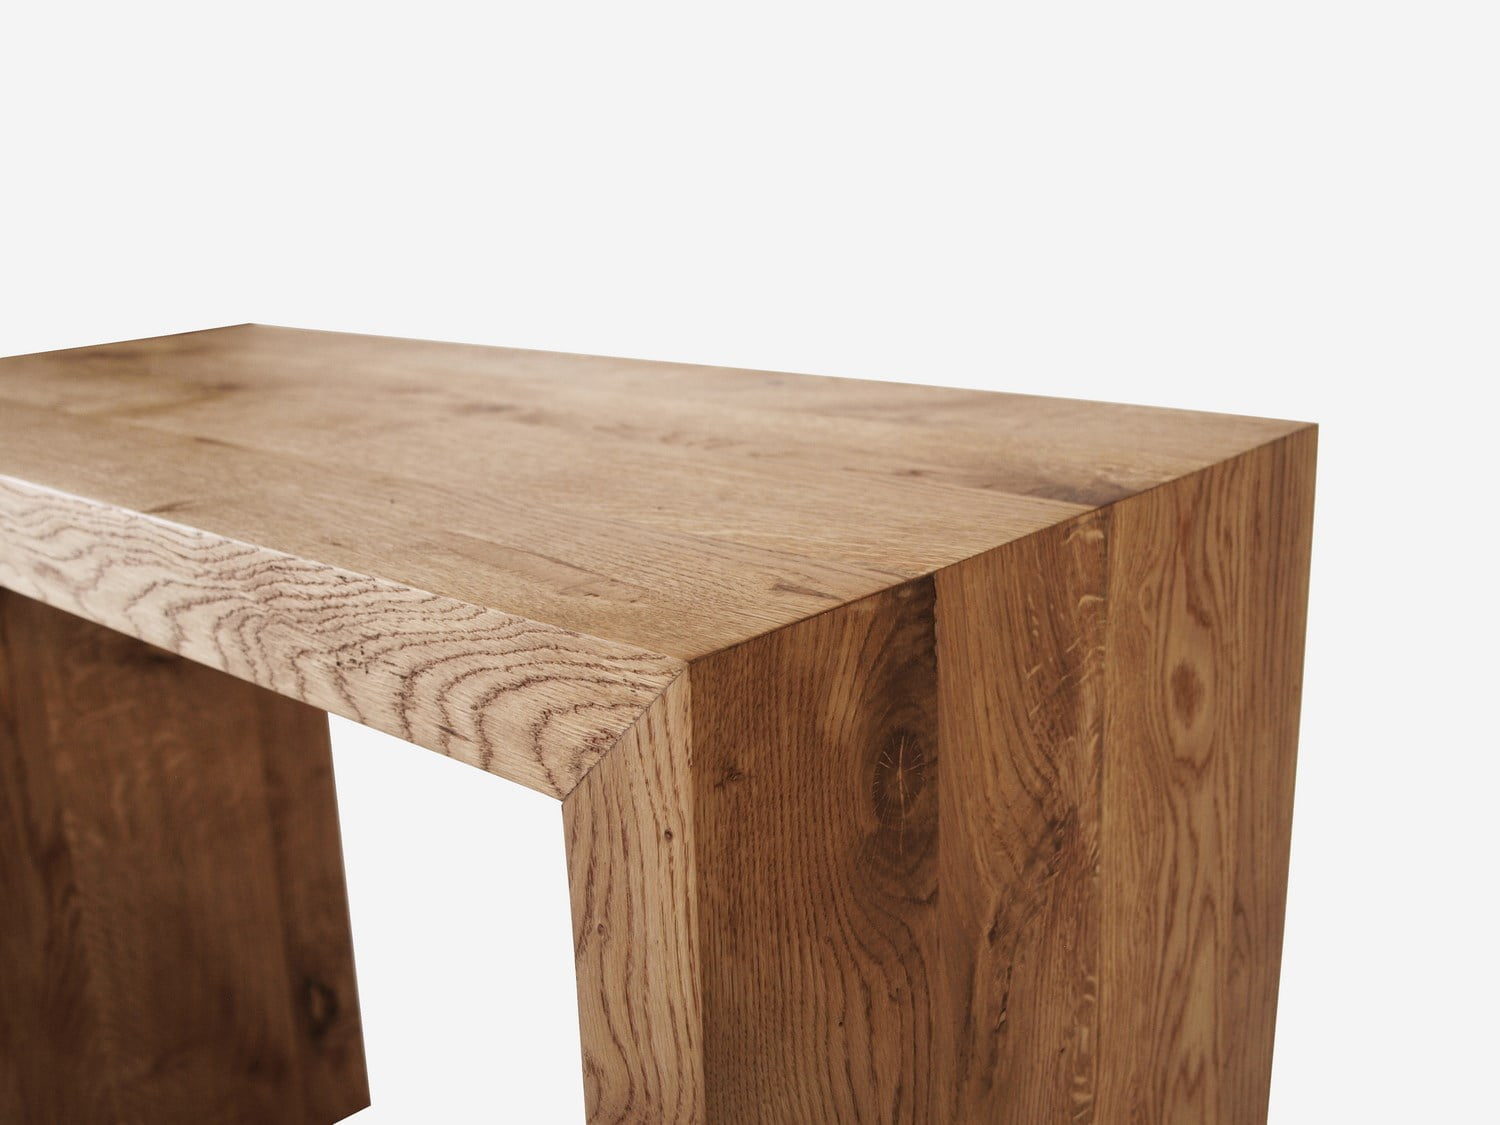 Oak simple console made of natural solid wood in a minimalist Scandinavian style.